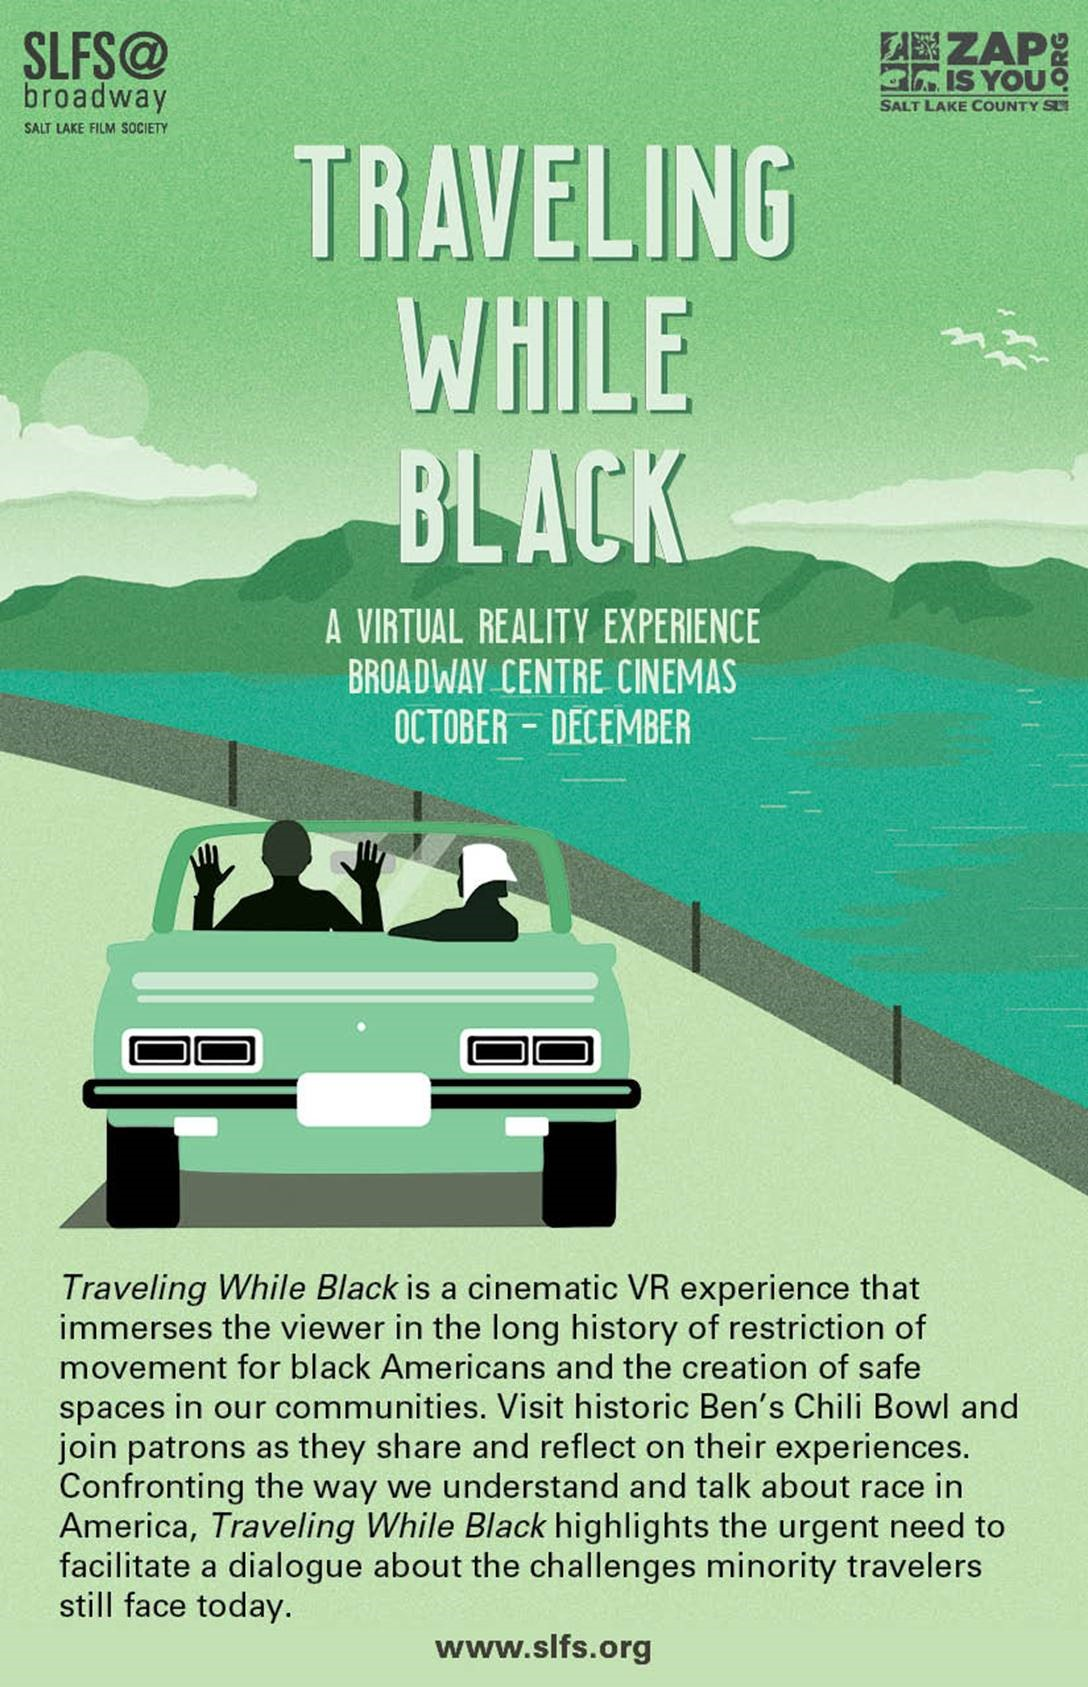 Promotional flyer for the VR experience Traveling While Black.